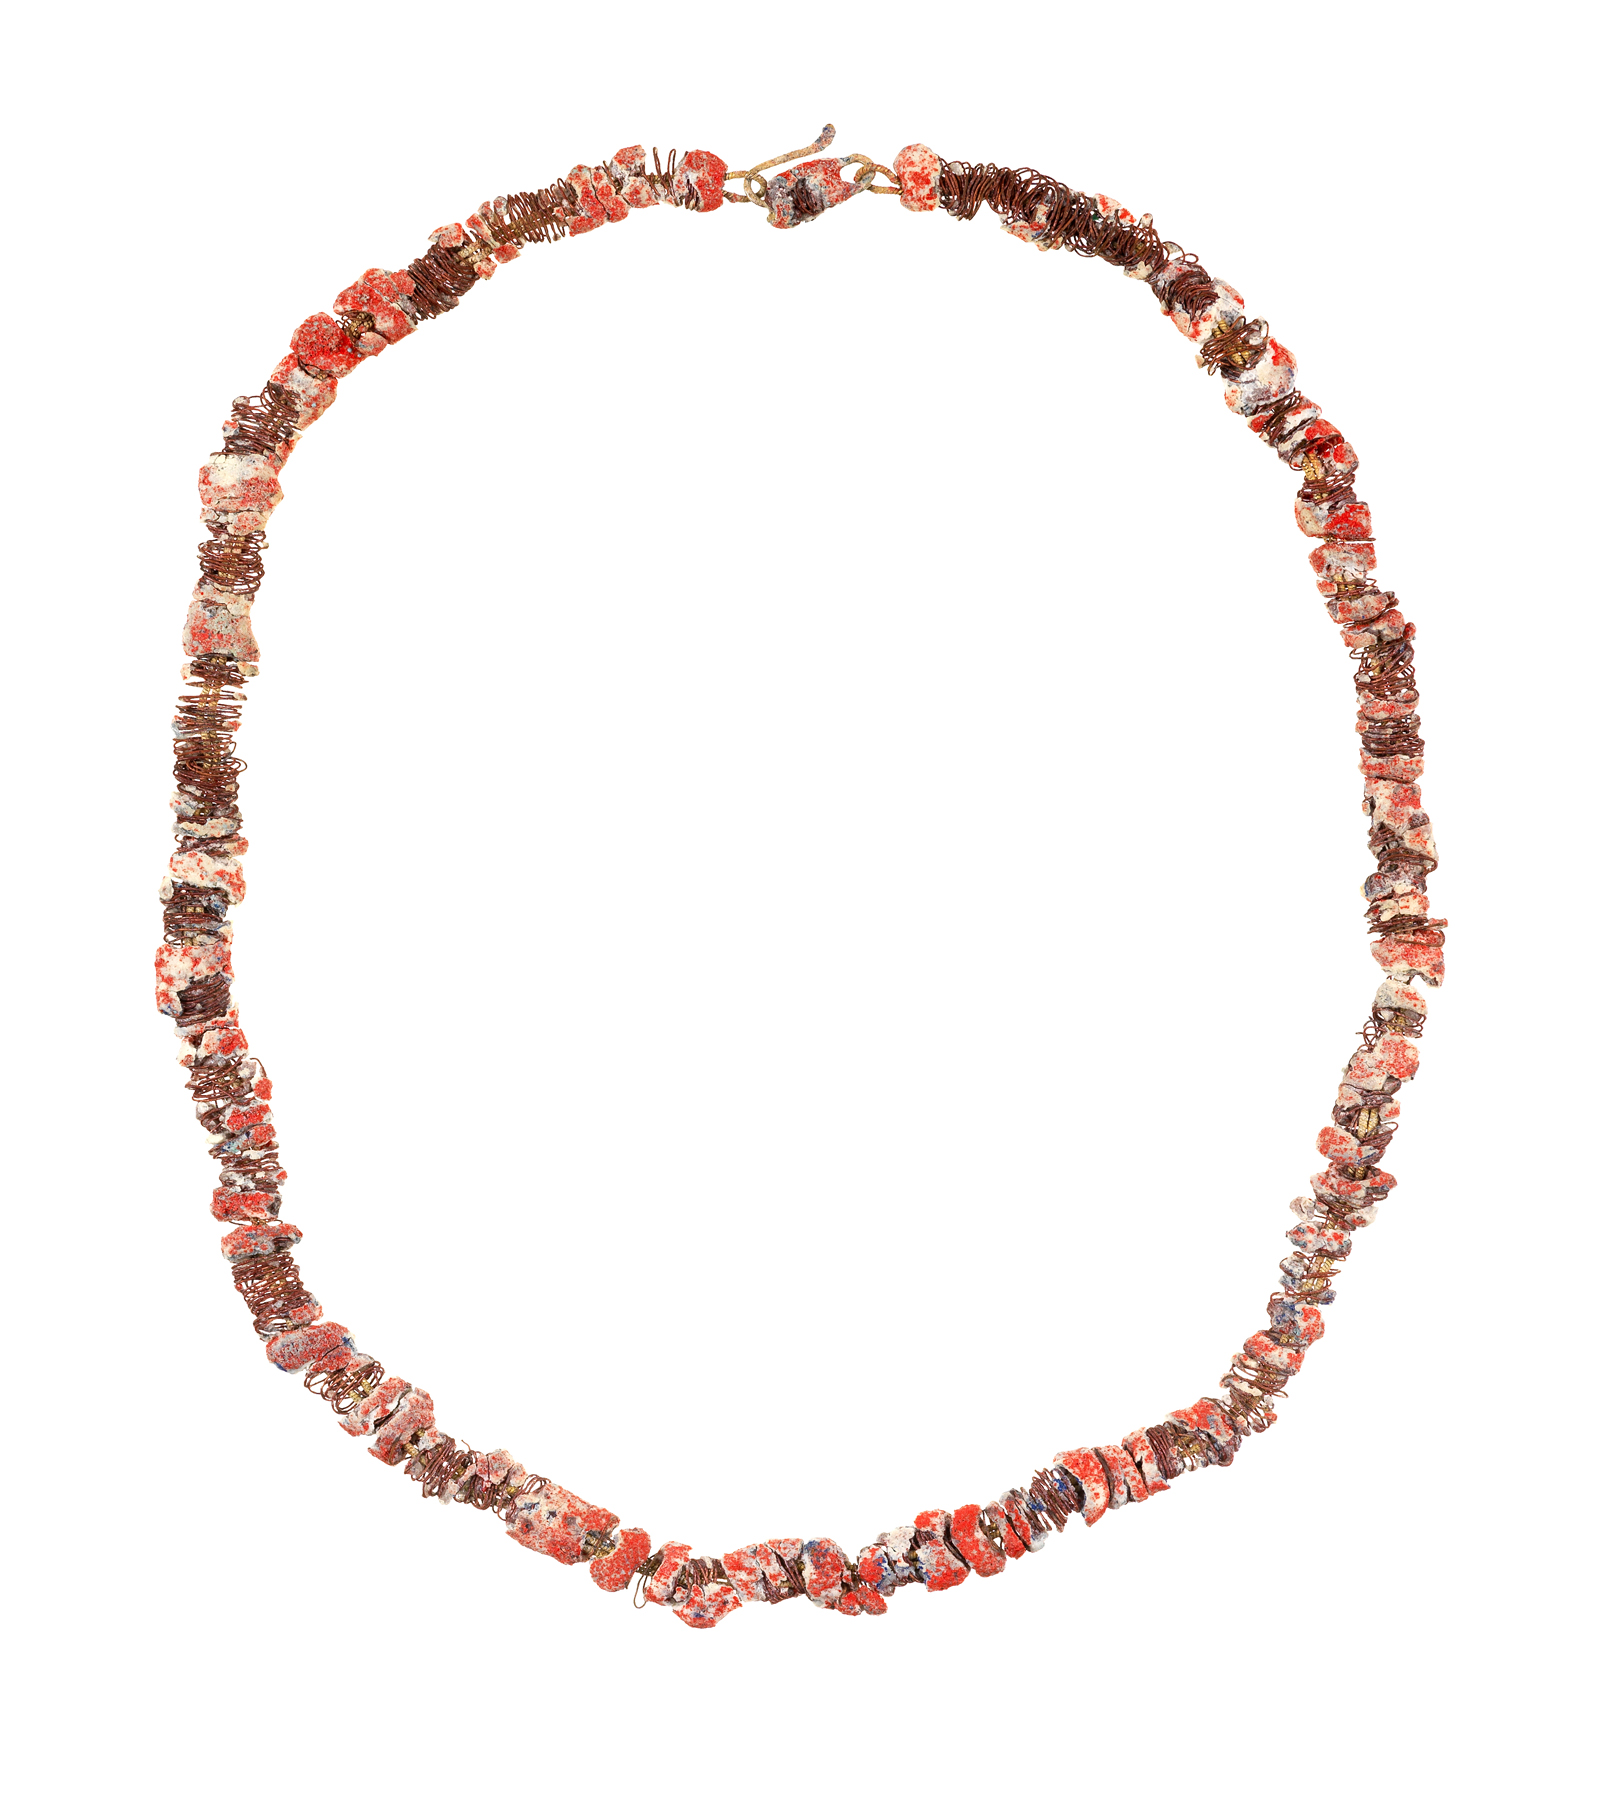 Unearthed Necklace 02, 2007